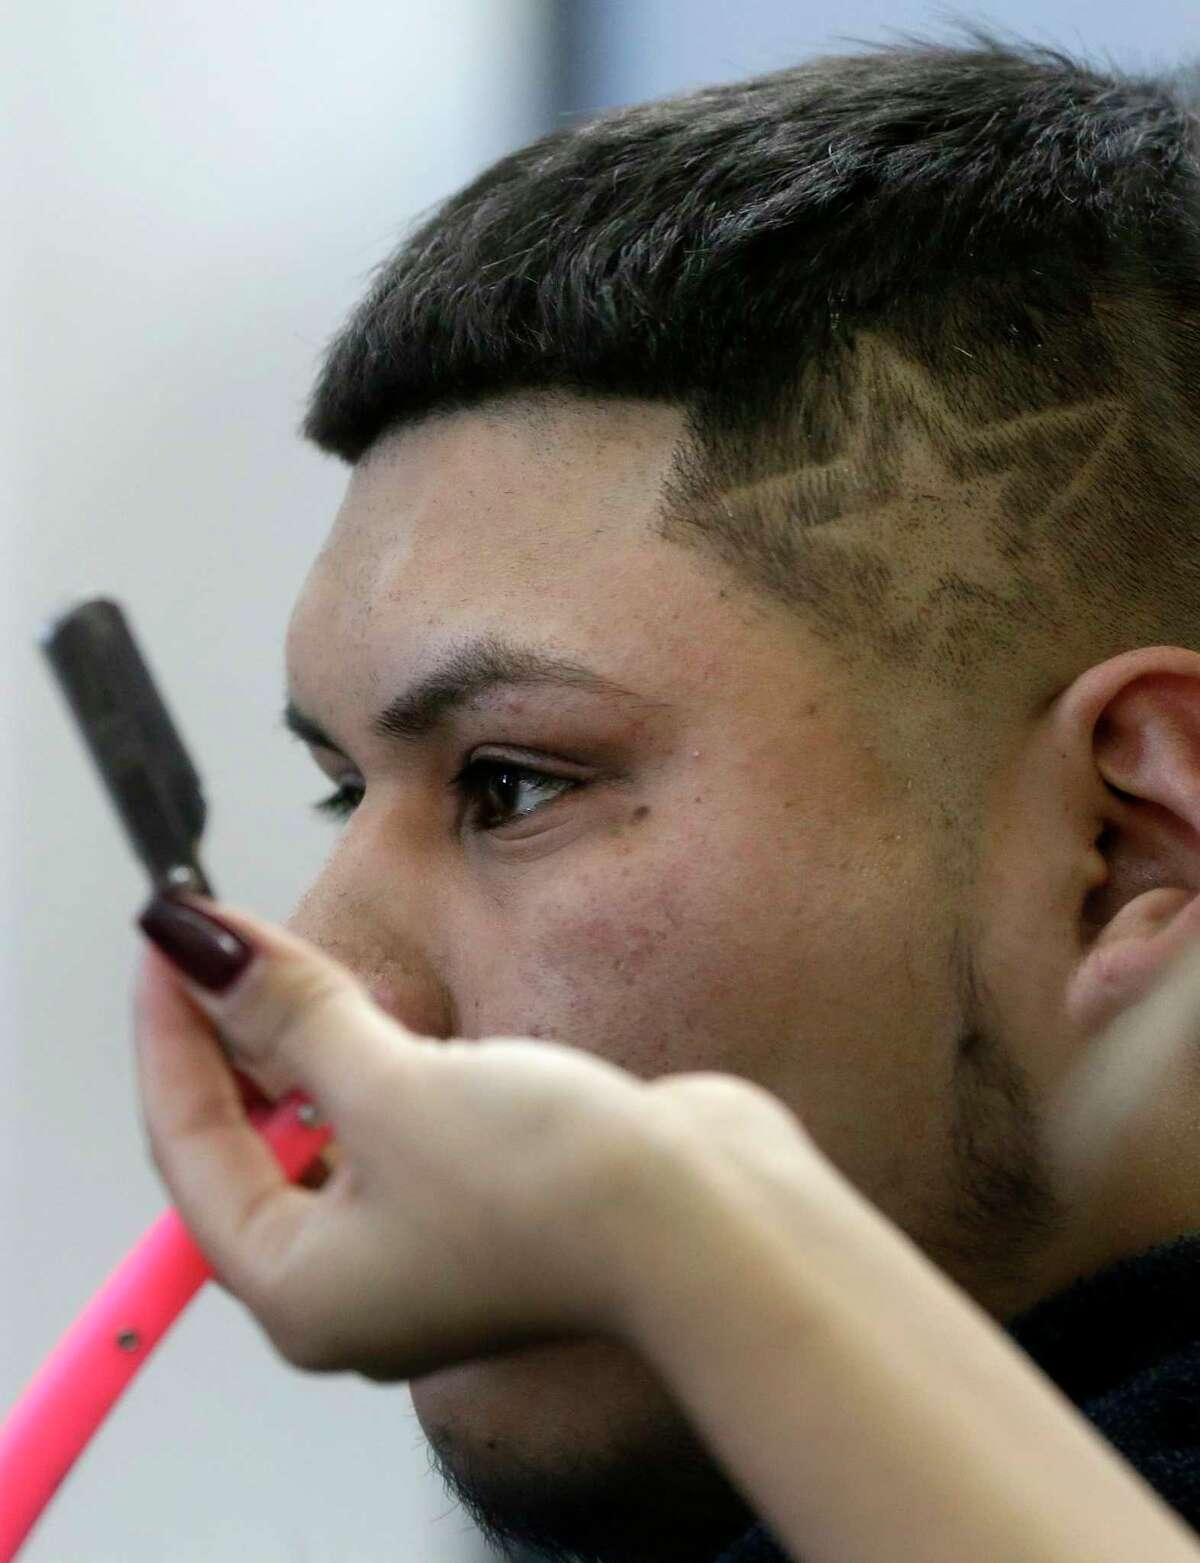 Astros fan Albert Sanchez, shown reflected in a mirror, watches as Diana Martinez, owner of Studio Cutz Beauty & Barber, 9461 Kempwood Dr., designs a star representing the Houston Astros logo into his fade haircut Wednesday, Oct. 25, 2017, in Houston.